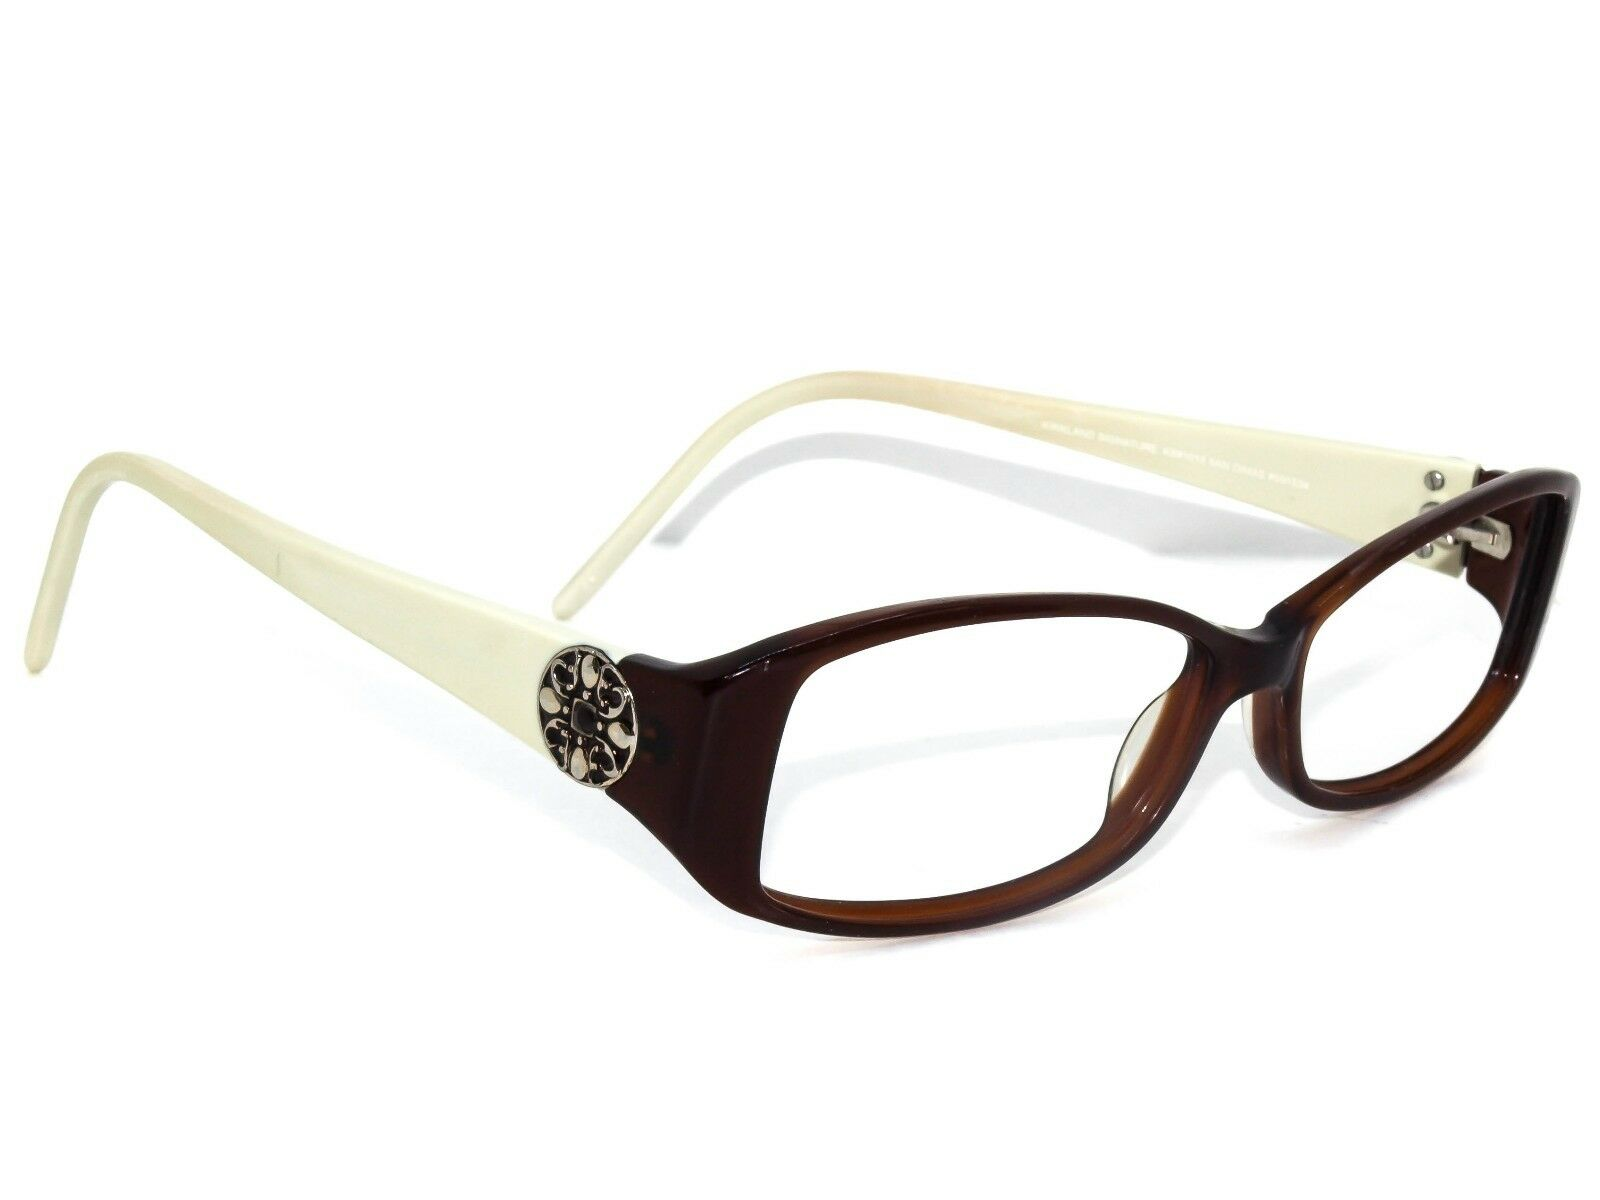 Kirkland Signature  KS 1015 San Dimas Brown/white Sunglasses Frame Only